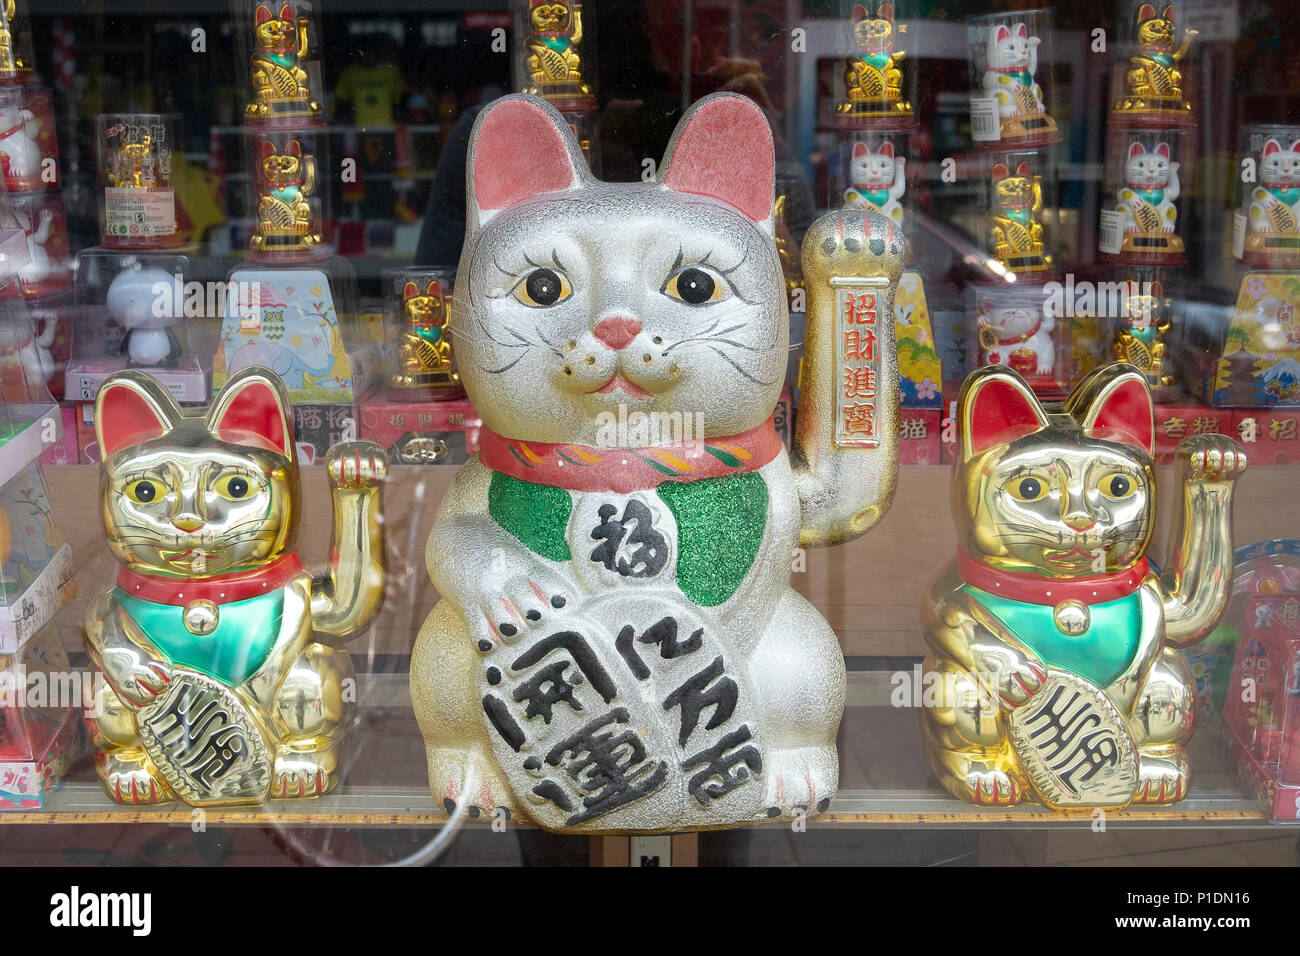 Manekinekos in a Chines shop in Cologne - Stock Image